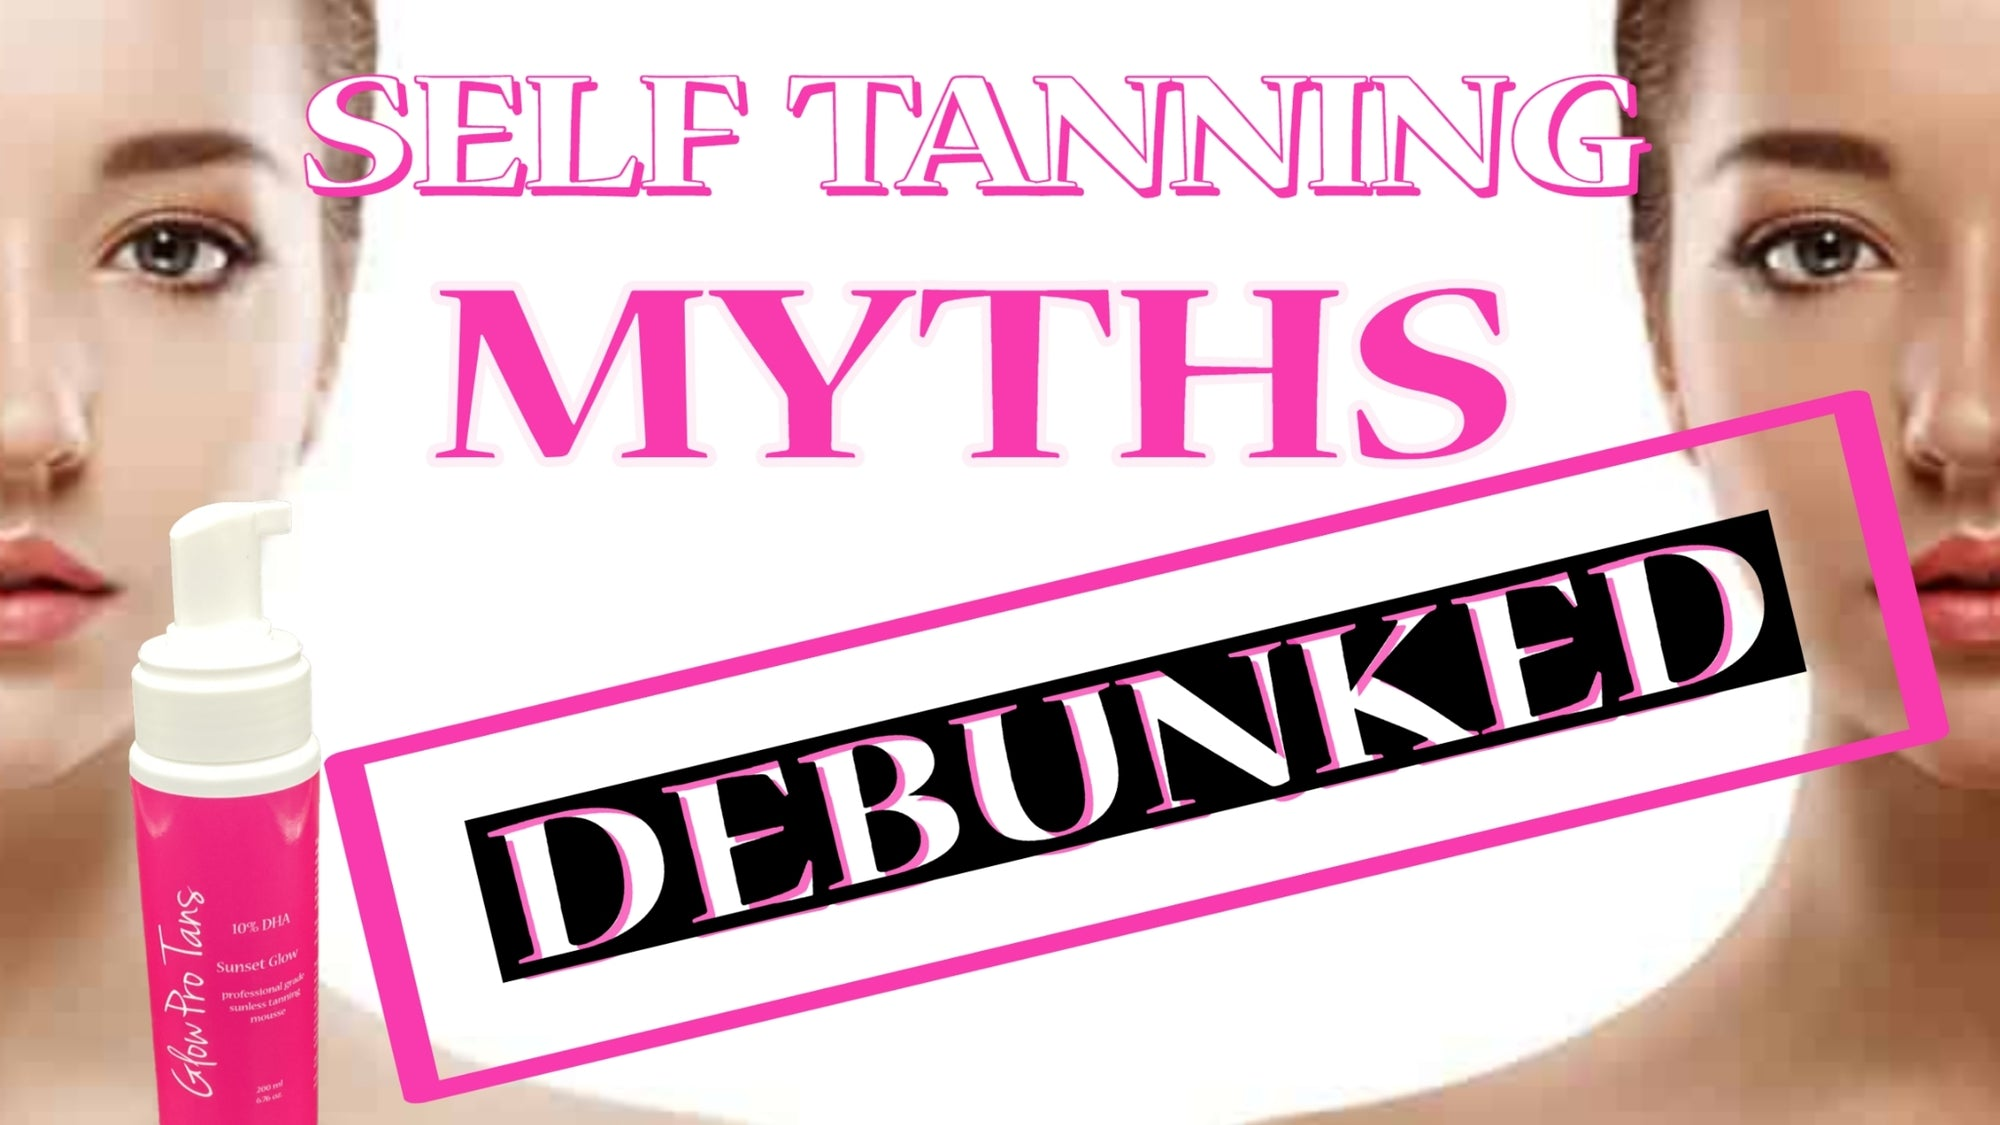 Tanning Myths Debunked